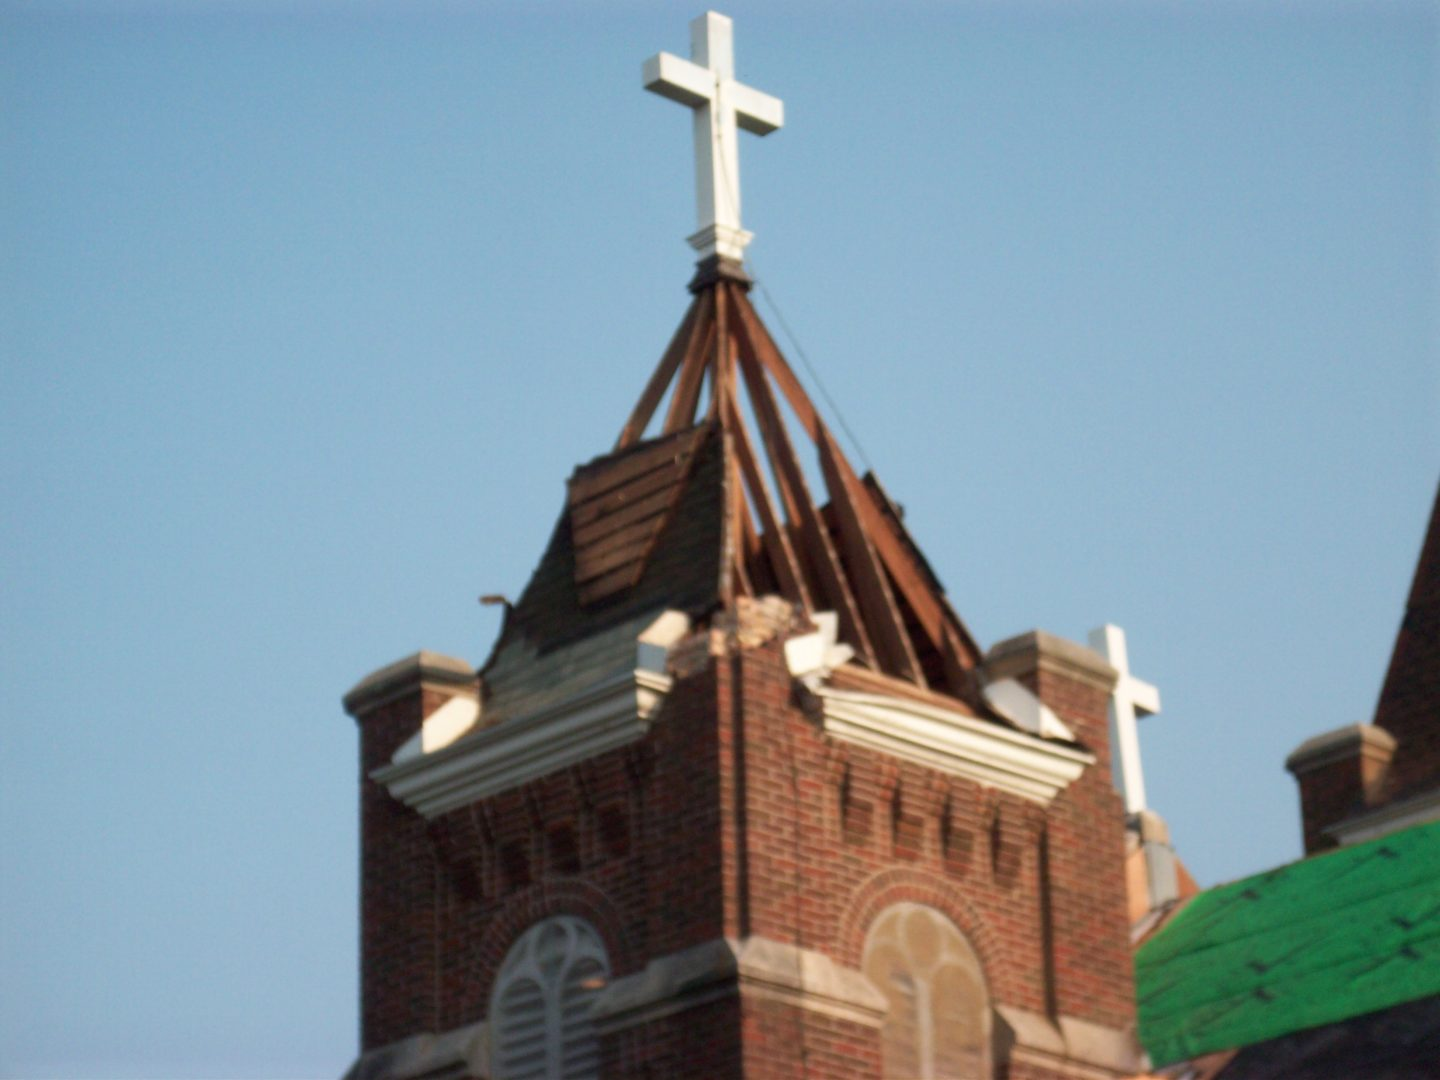 Damaged Cap has been removed from north steeple